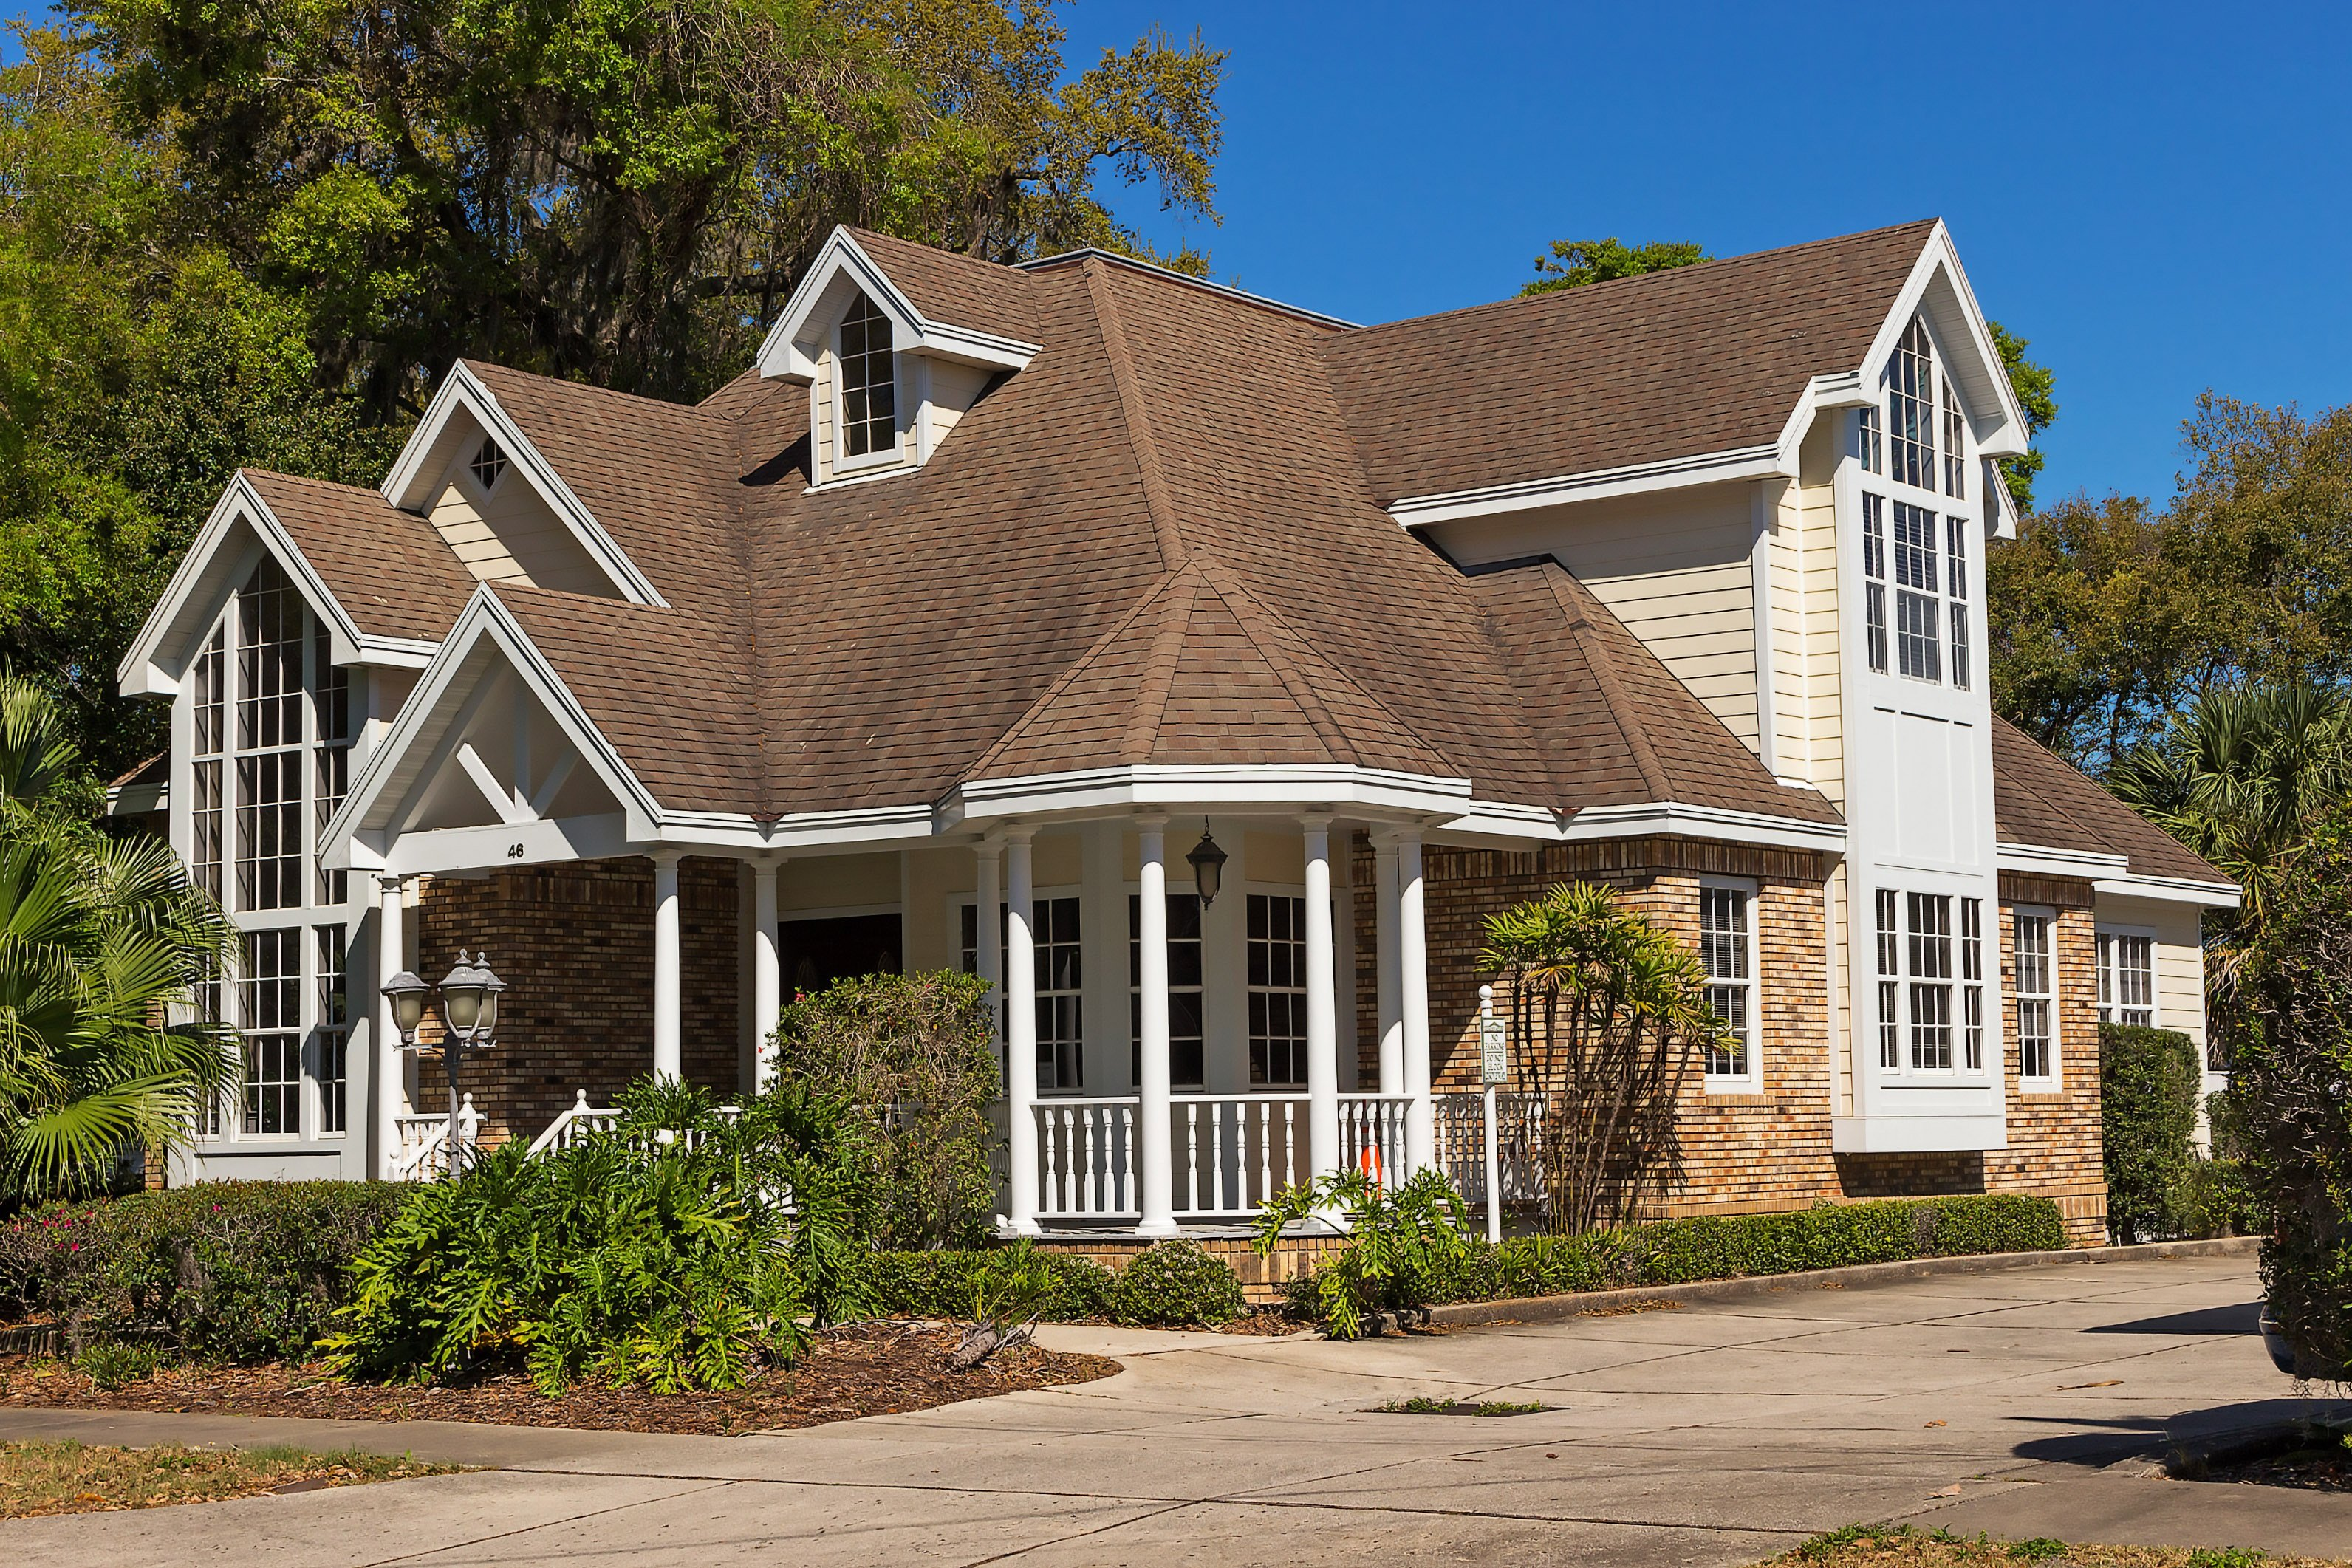 How to Pick the Right Shingle Color for Your Home